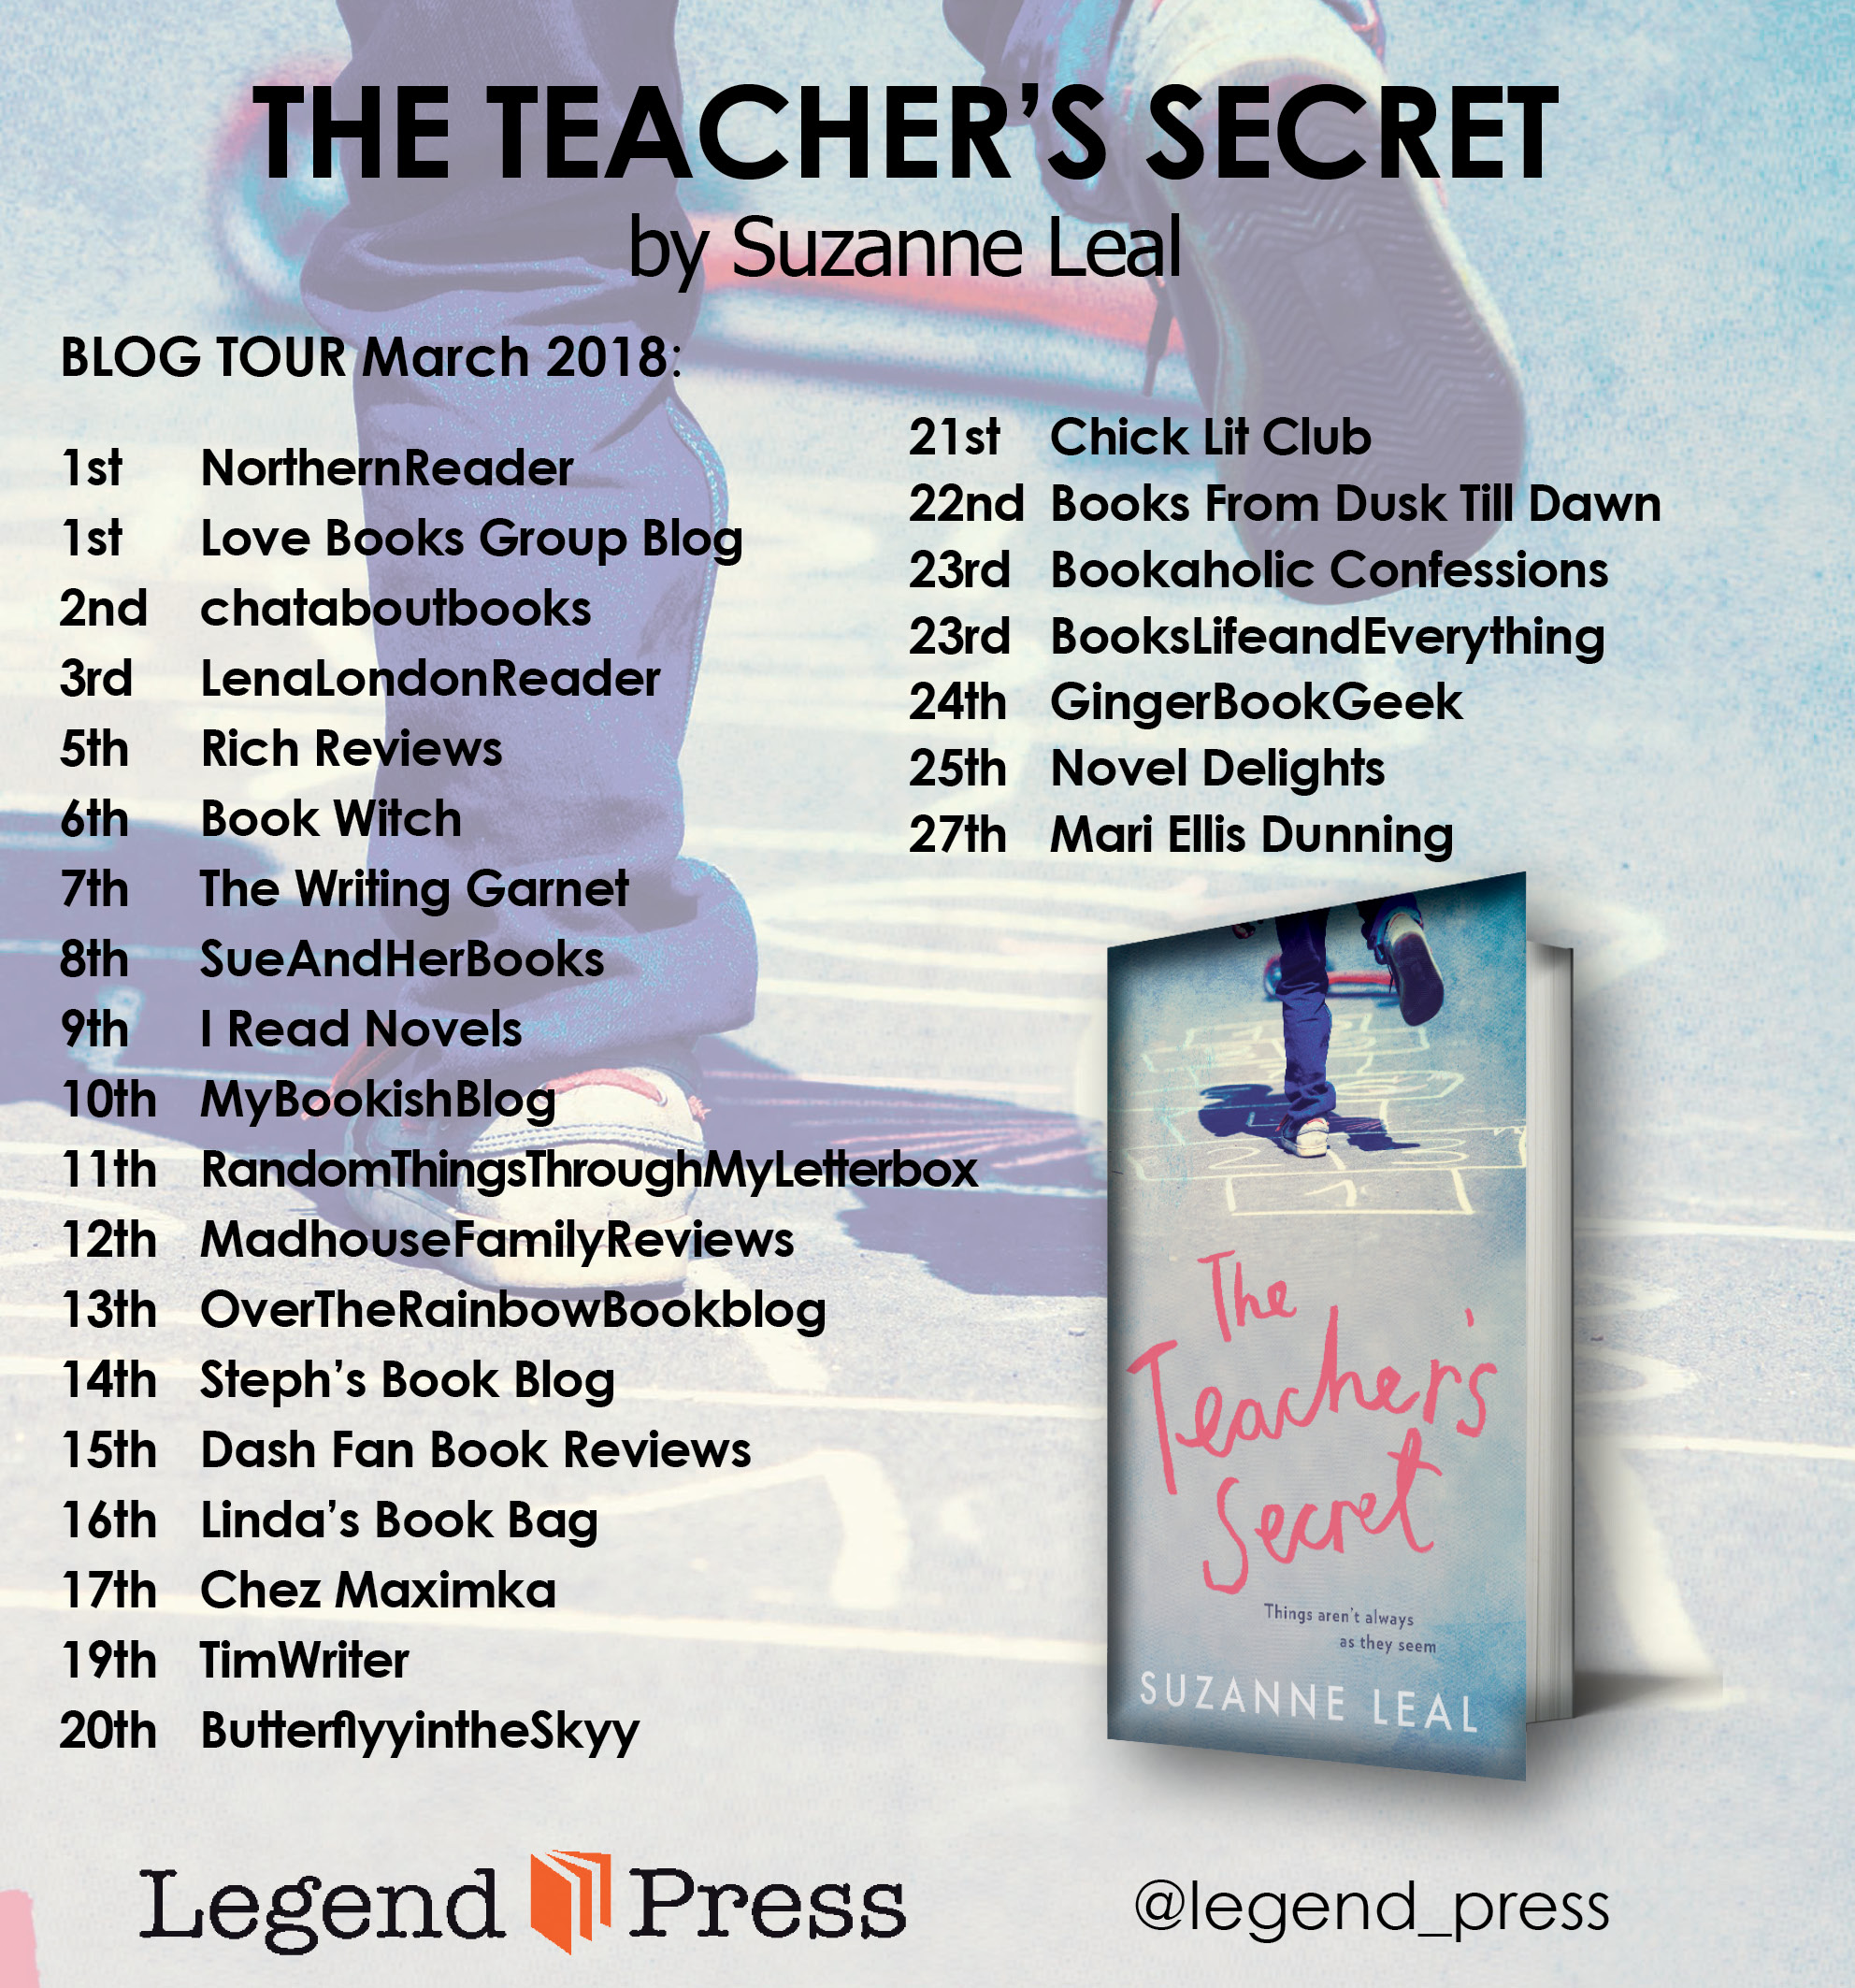 The-Teacher's-Secret-blog-tour